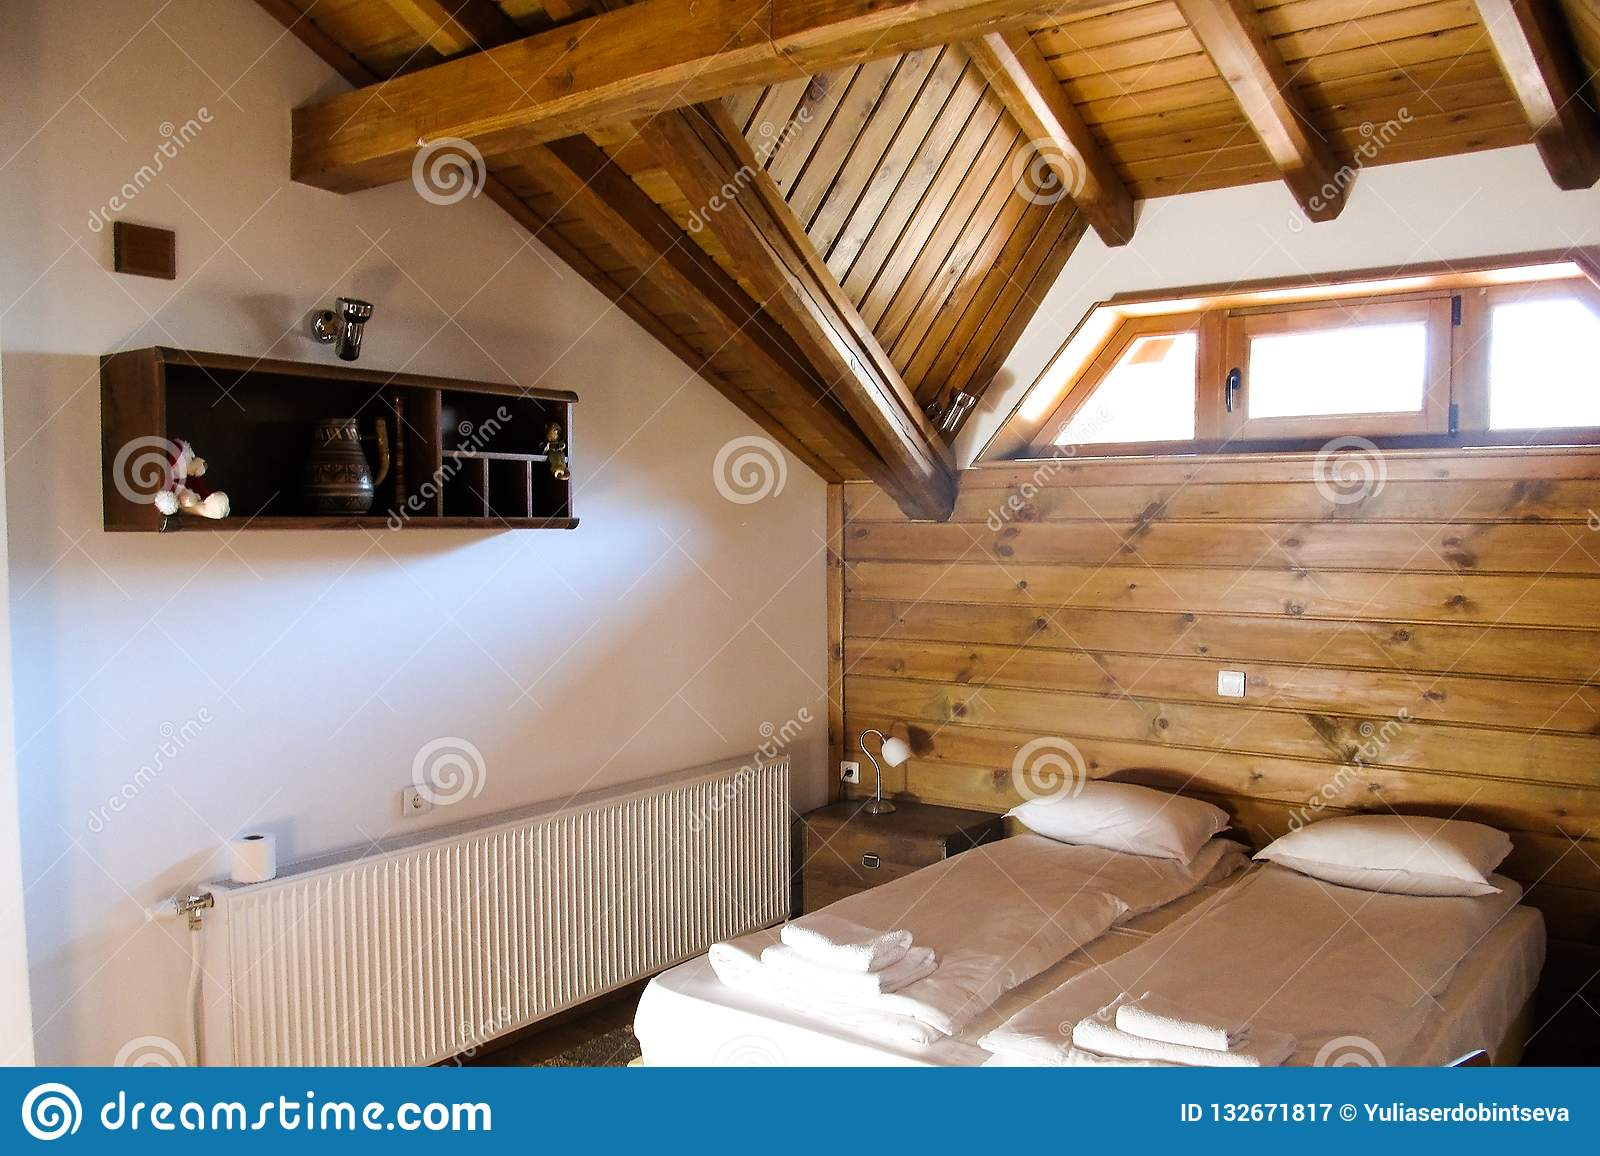 Cozy apartments in a wooden house in Bulgaria.